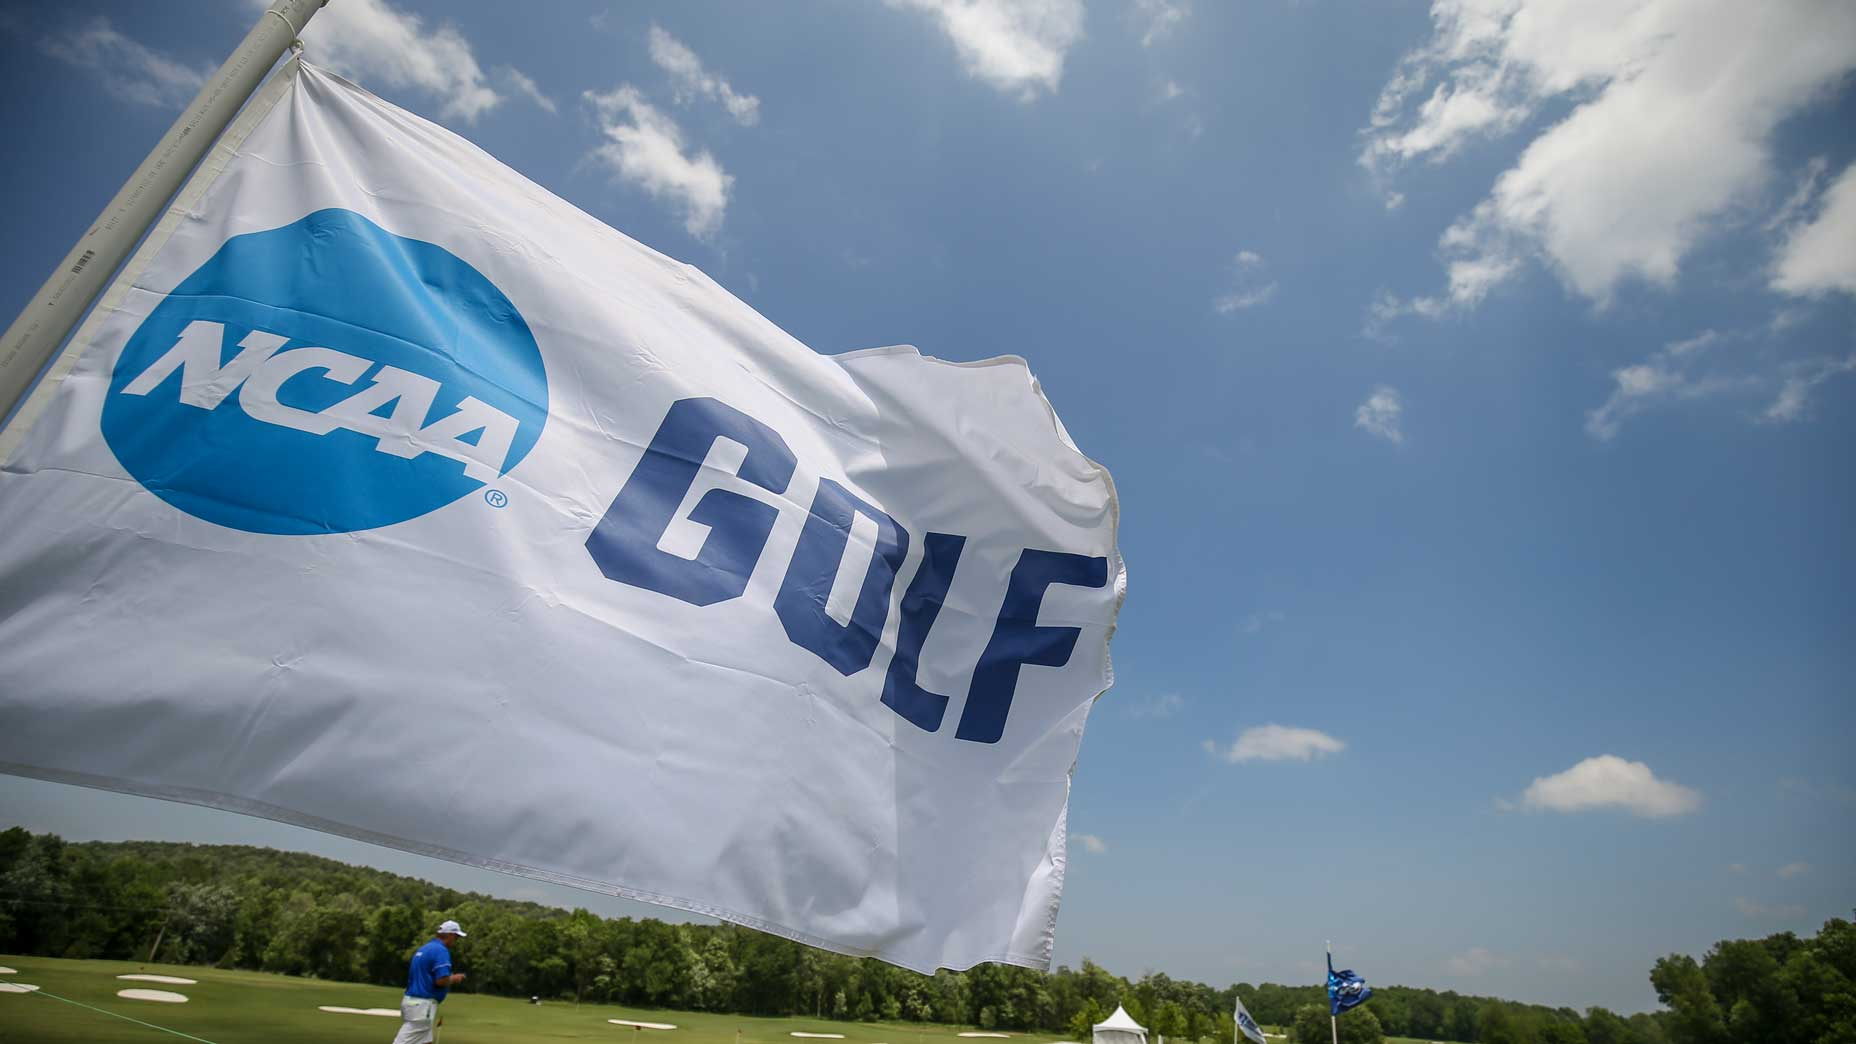 ncaa golf flag